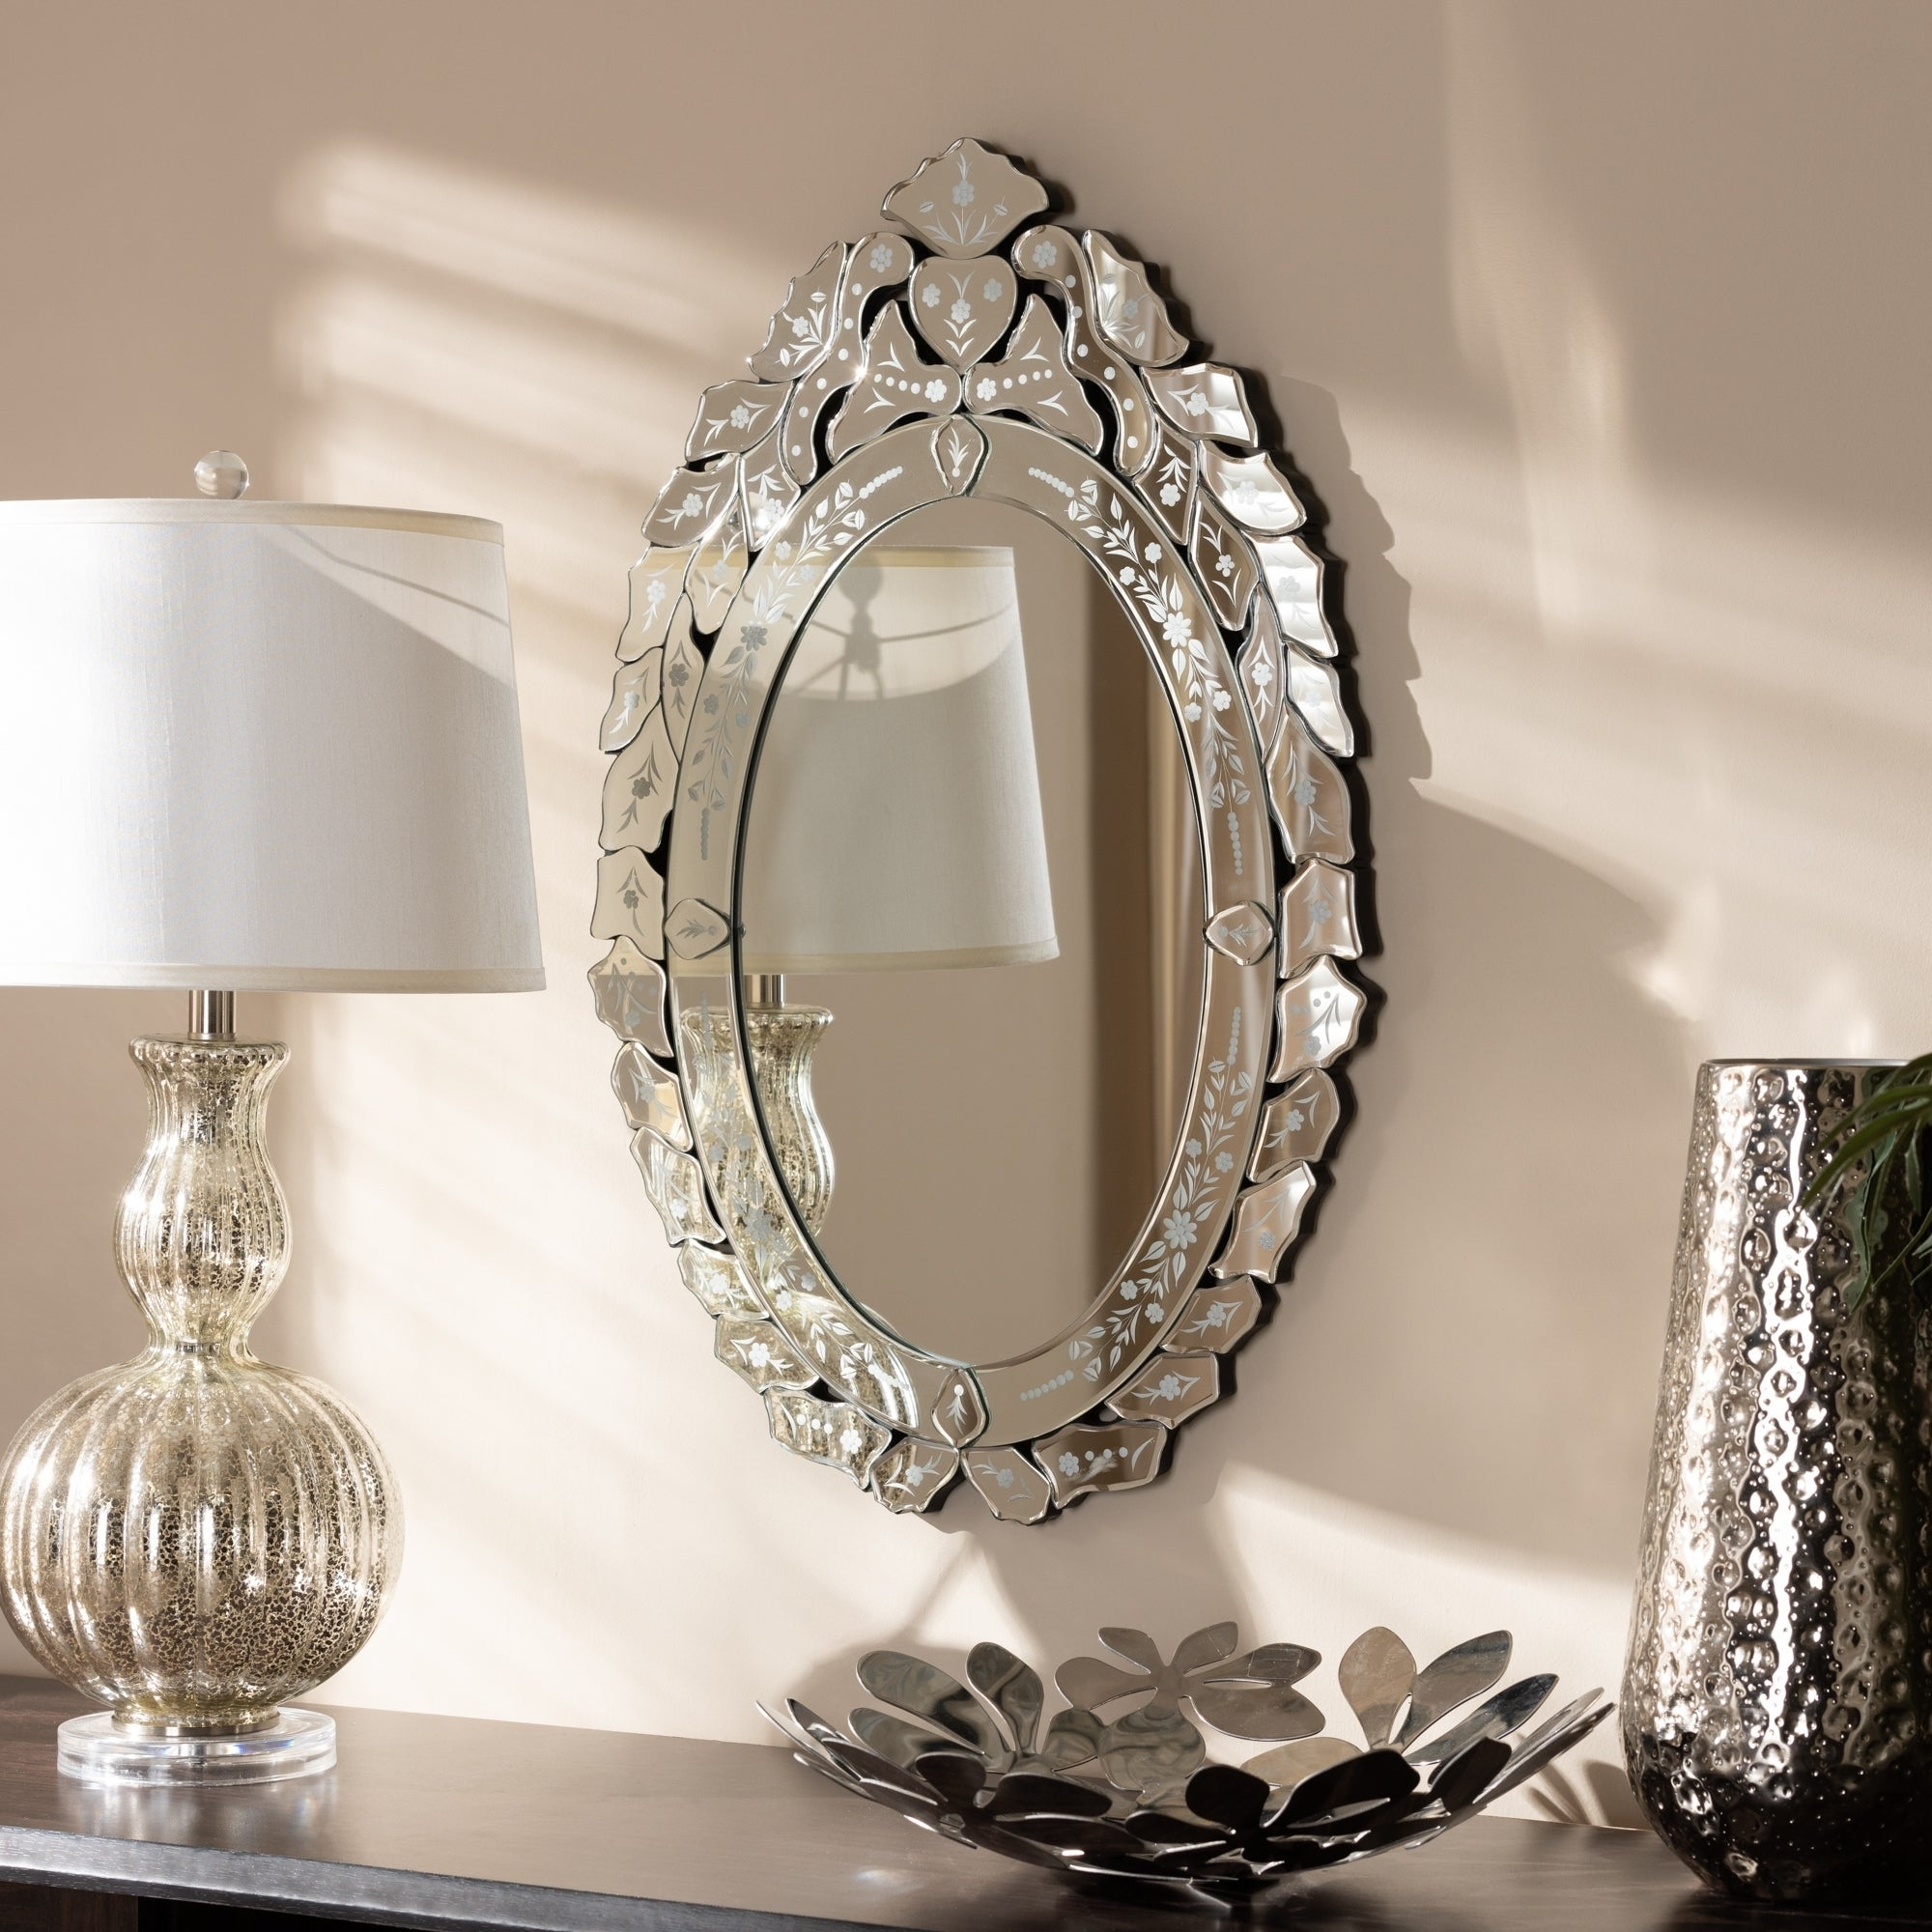 Fashionable Traditional Silver Venetian Style Wall Mirrorbaxton Studio – Antique Silver Throughout Venetian Style Wall Mirrors (View 8 of 20)